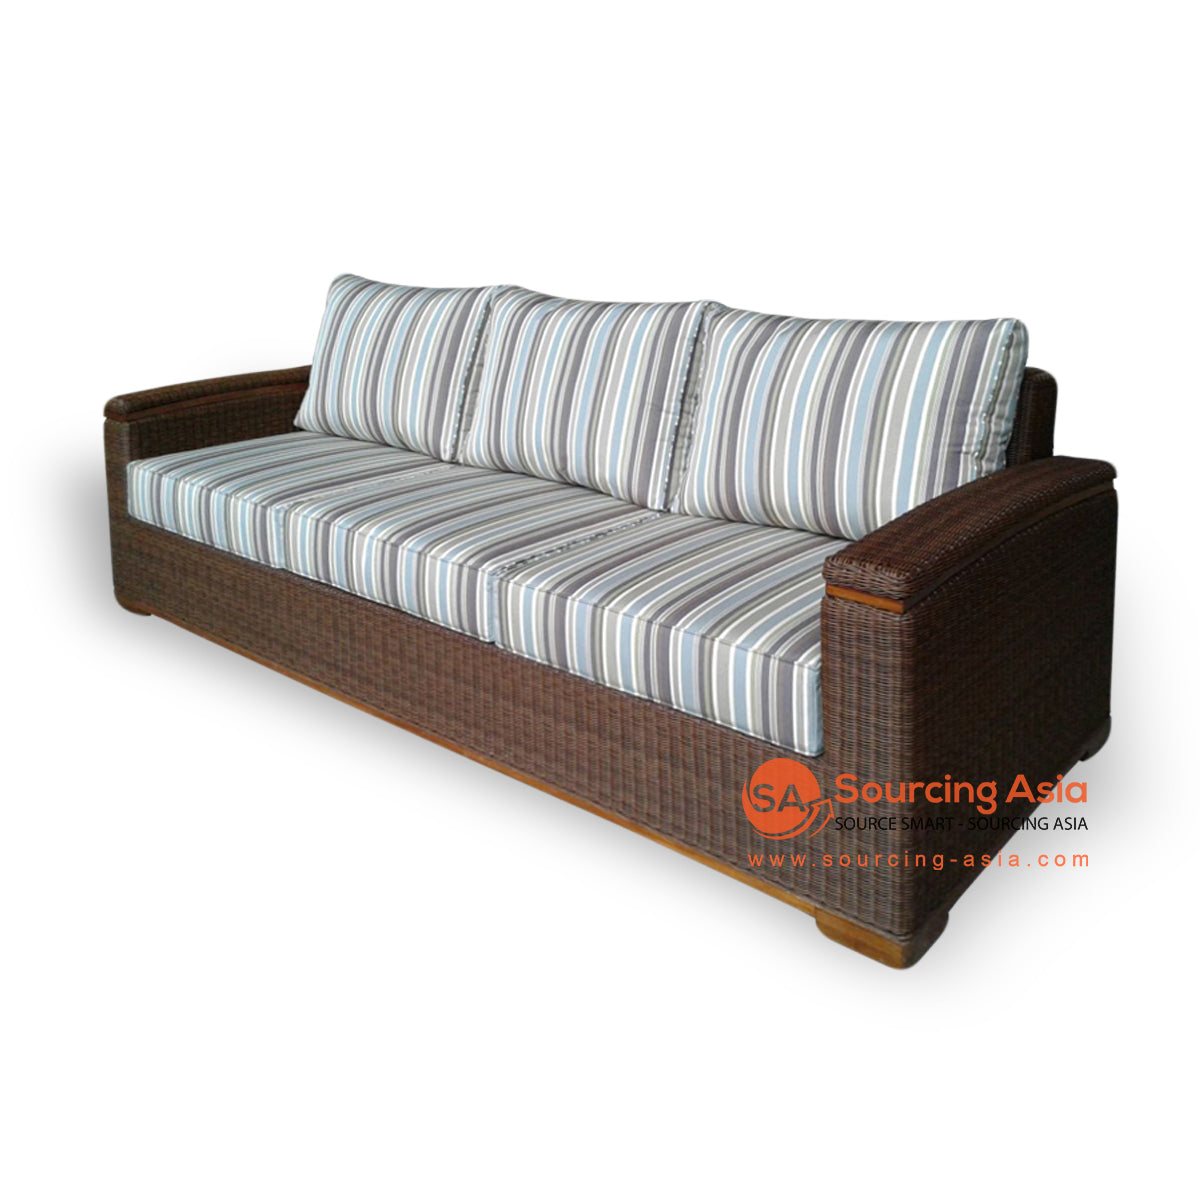 IDR003 3 SEAT SOFA SYNTHETIC RATTAN